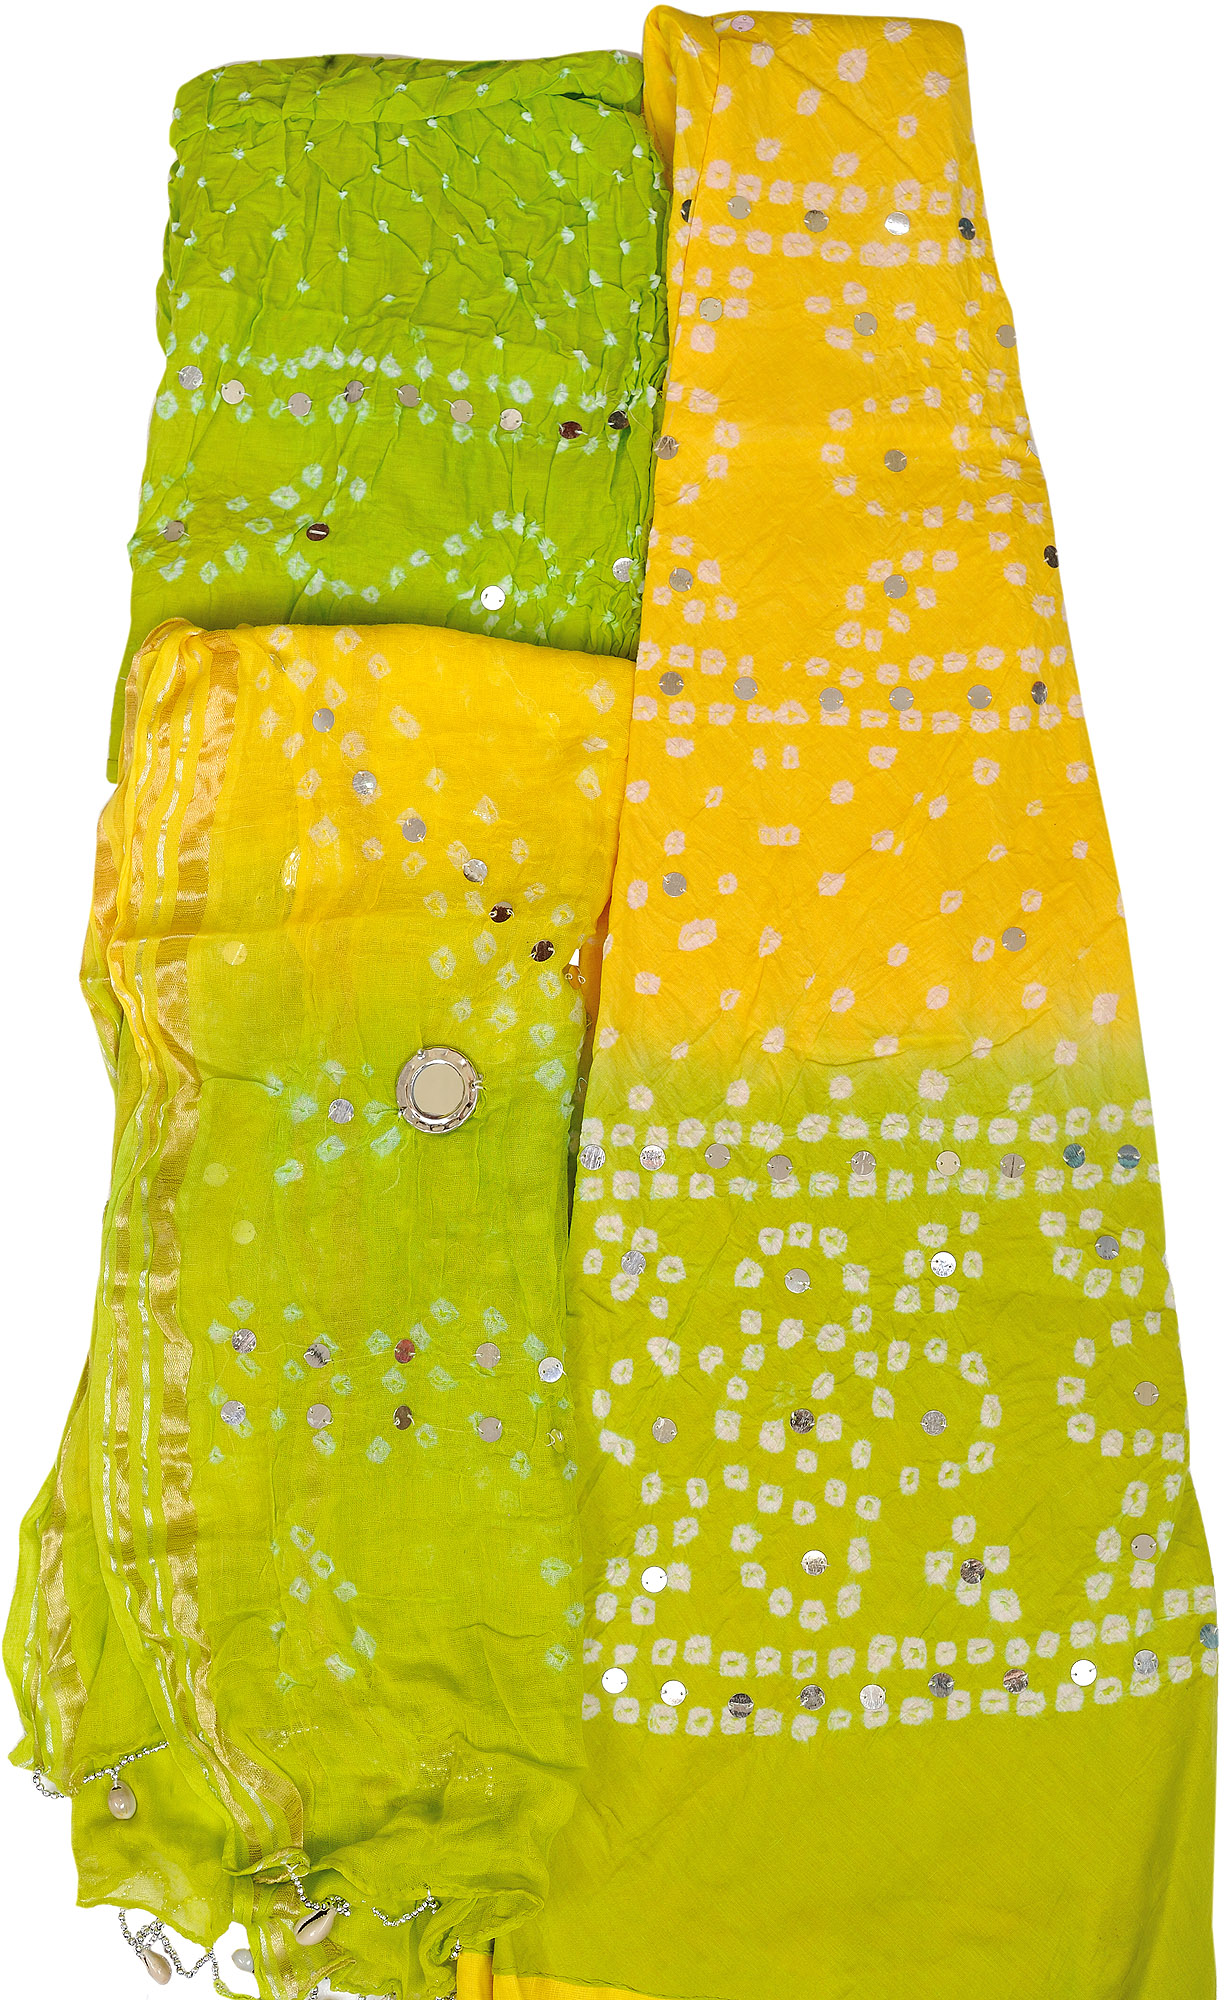 adbafbdc3 Bandhani Tie-Dye Lehenga Choli Fabric from Jaipur with Large Sequins and  Hanging Shells on Dupatta